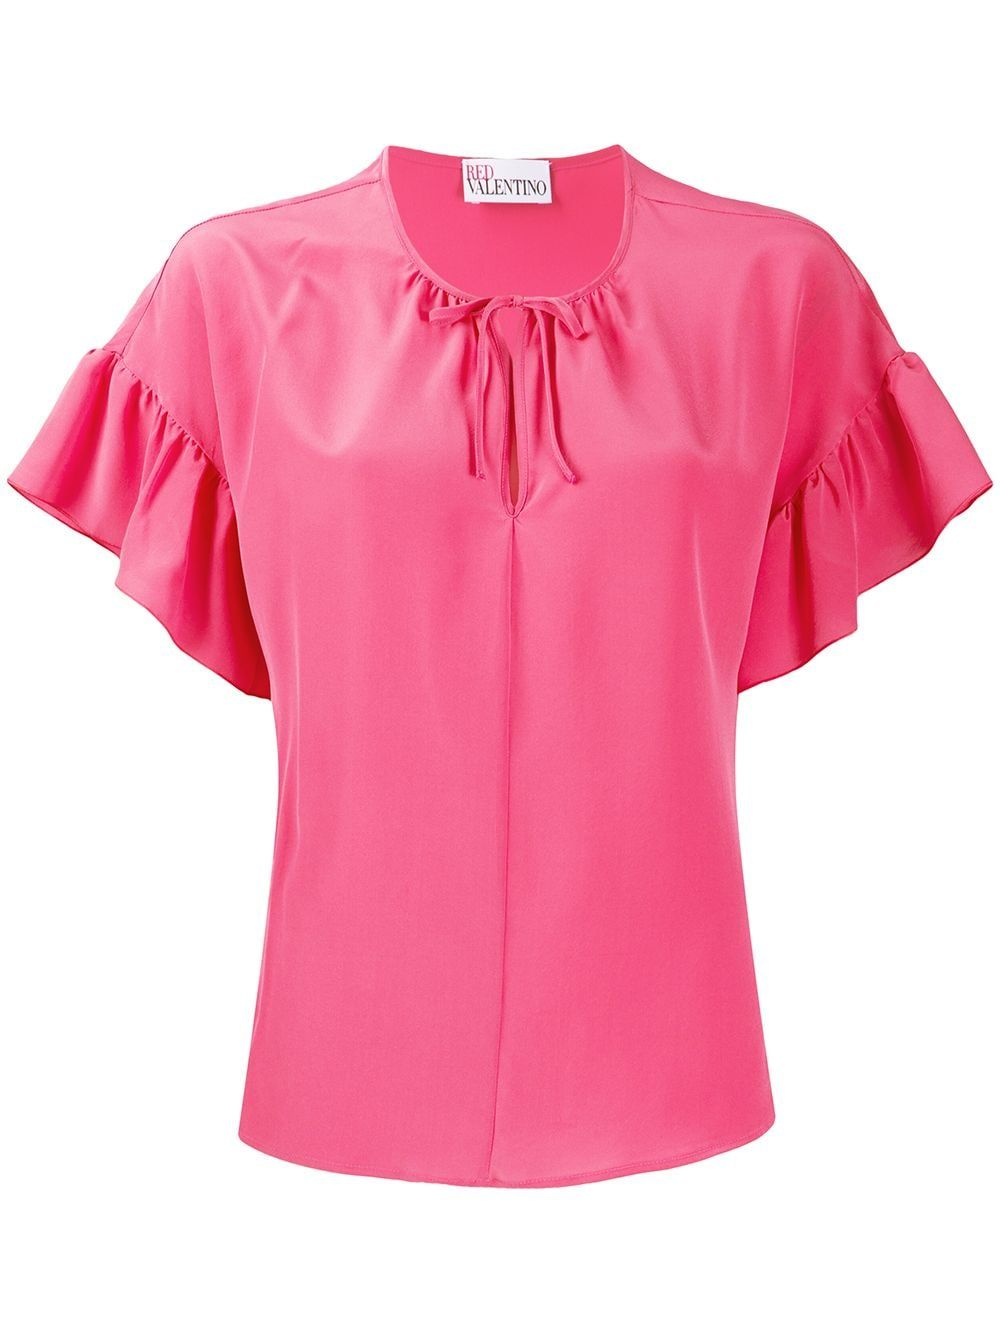 Red Valentino Ruffle Sleeve Blouse In Pink Modesens Ruffle Sleeve Blouse Bright Pink Blouse Pink Blouse